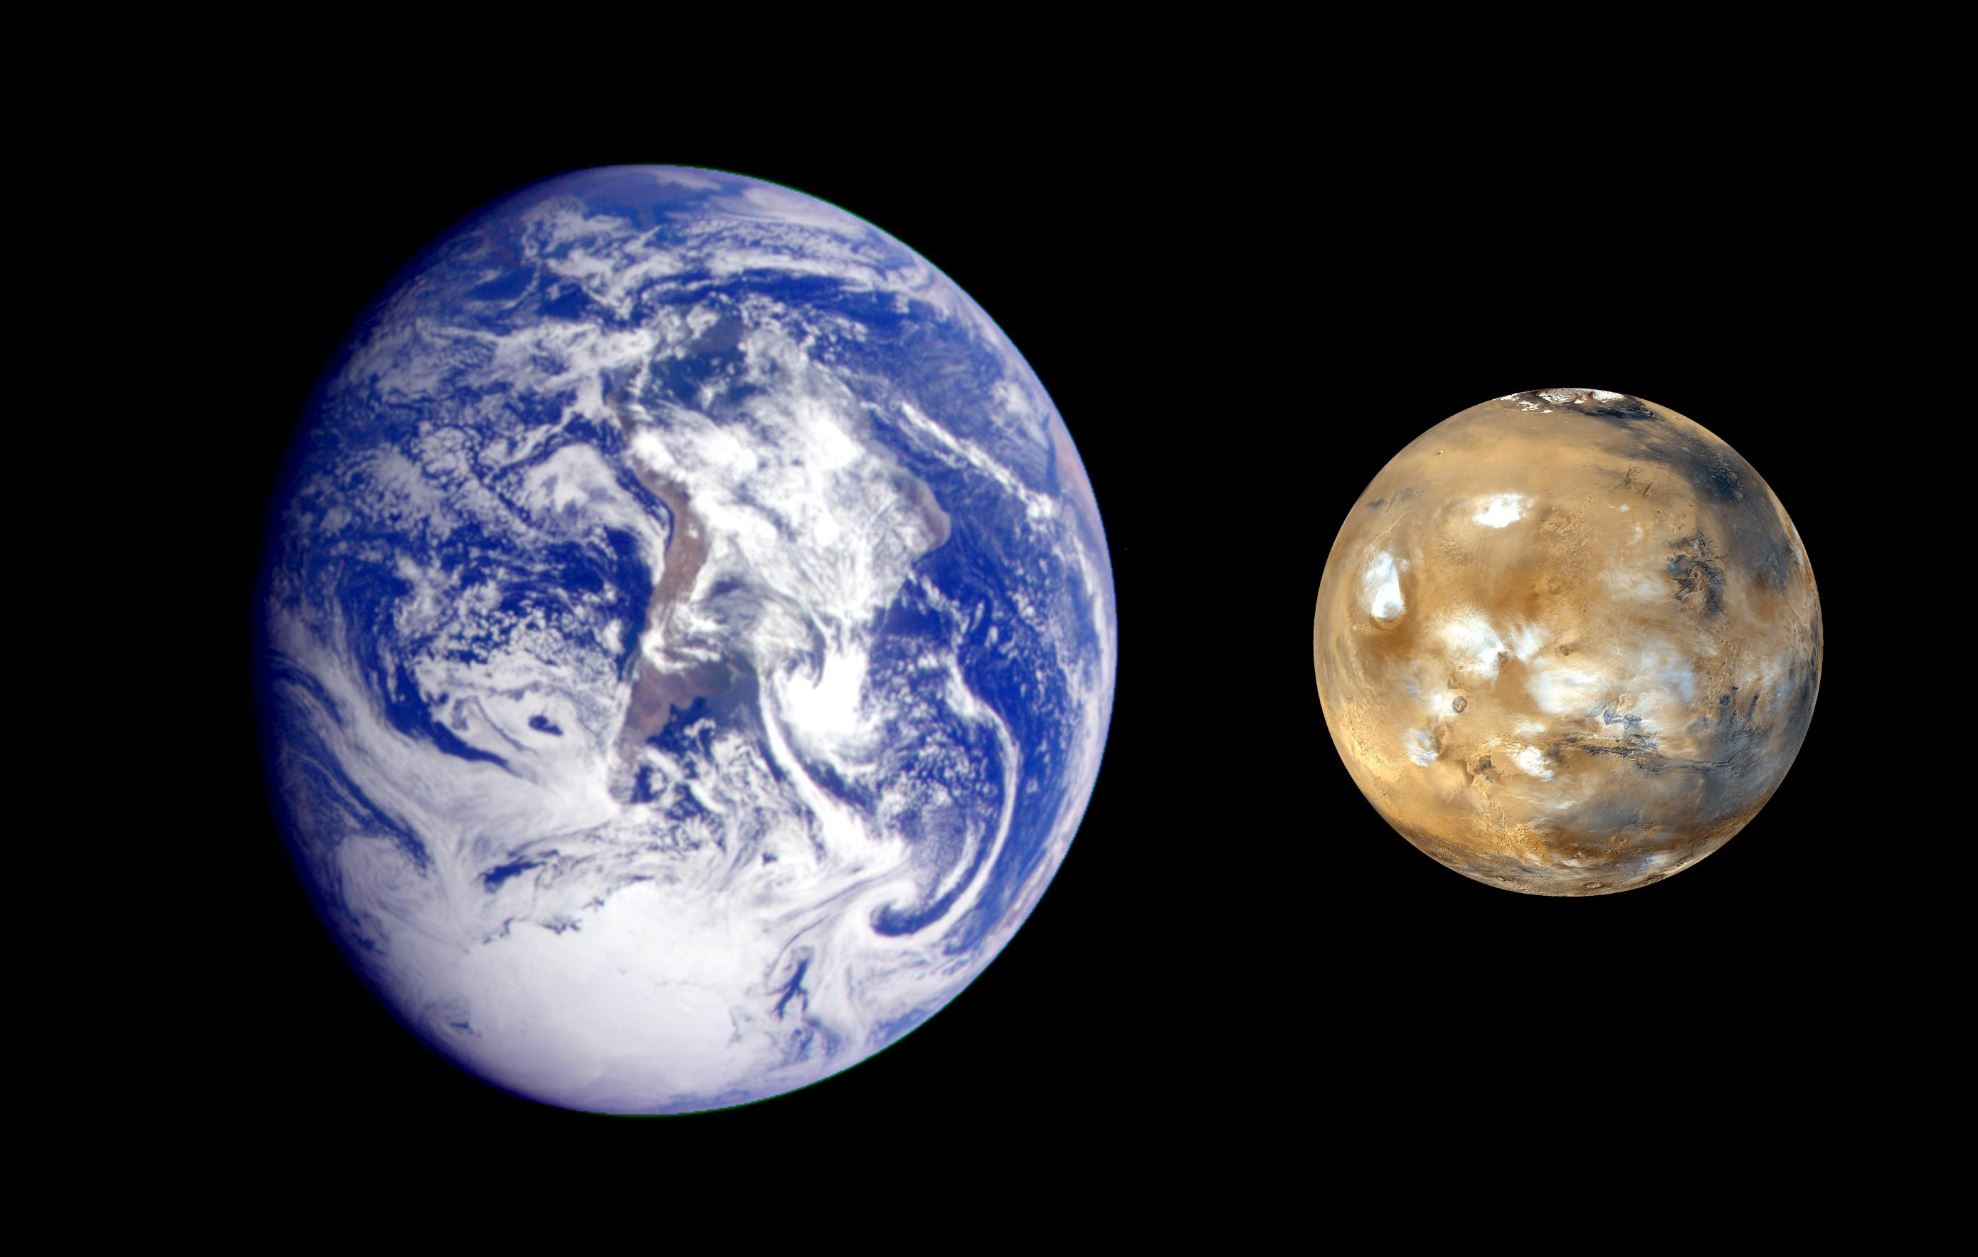 This composite image of Earth and Mars was created to allow viewers to gain a better understanding of the relative sizes of the two planets. - Image Credit: NASA/JPL-Caltech